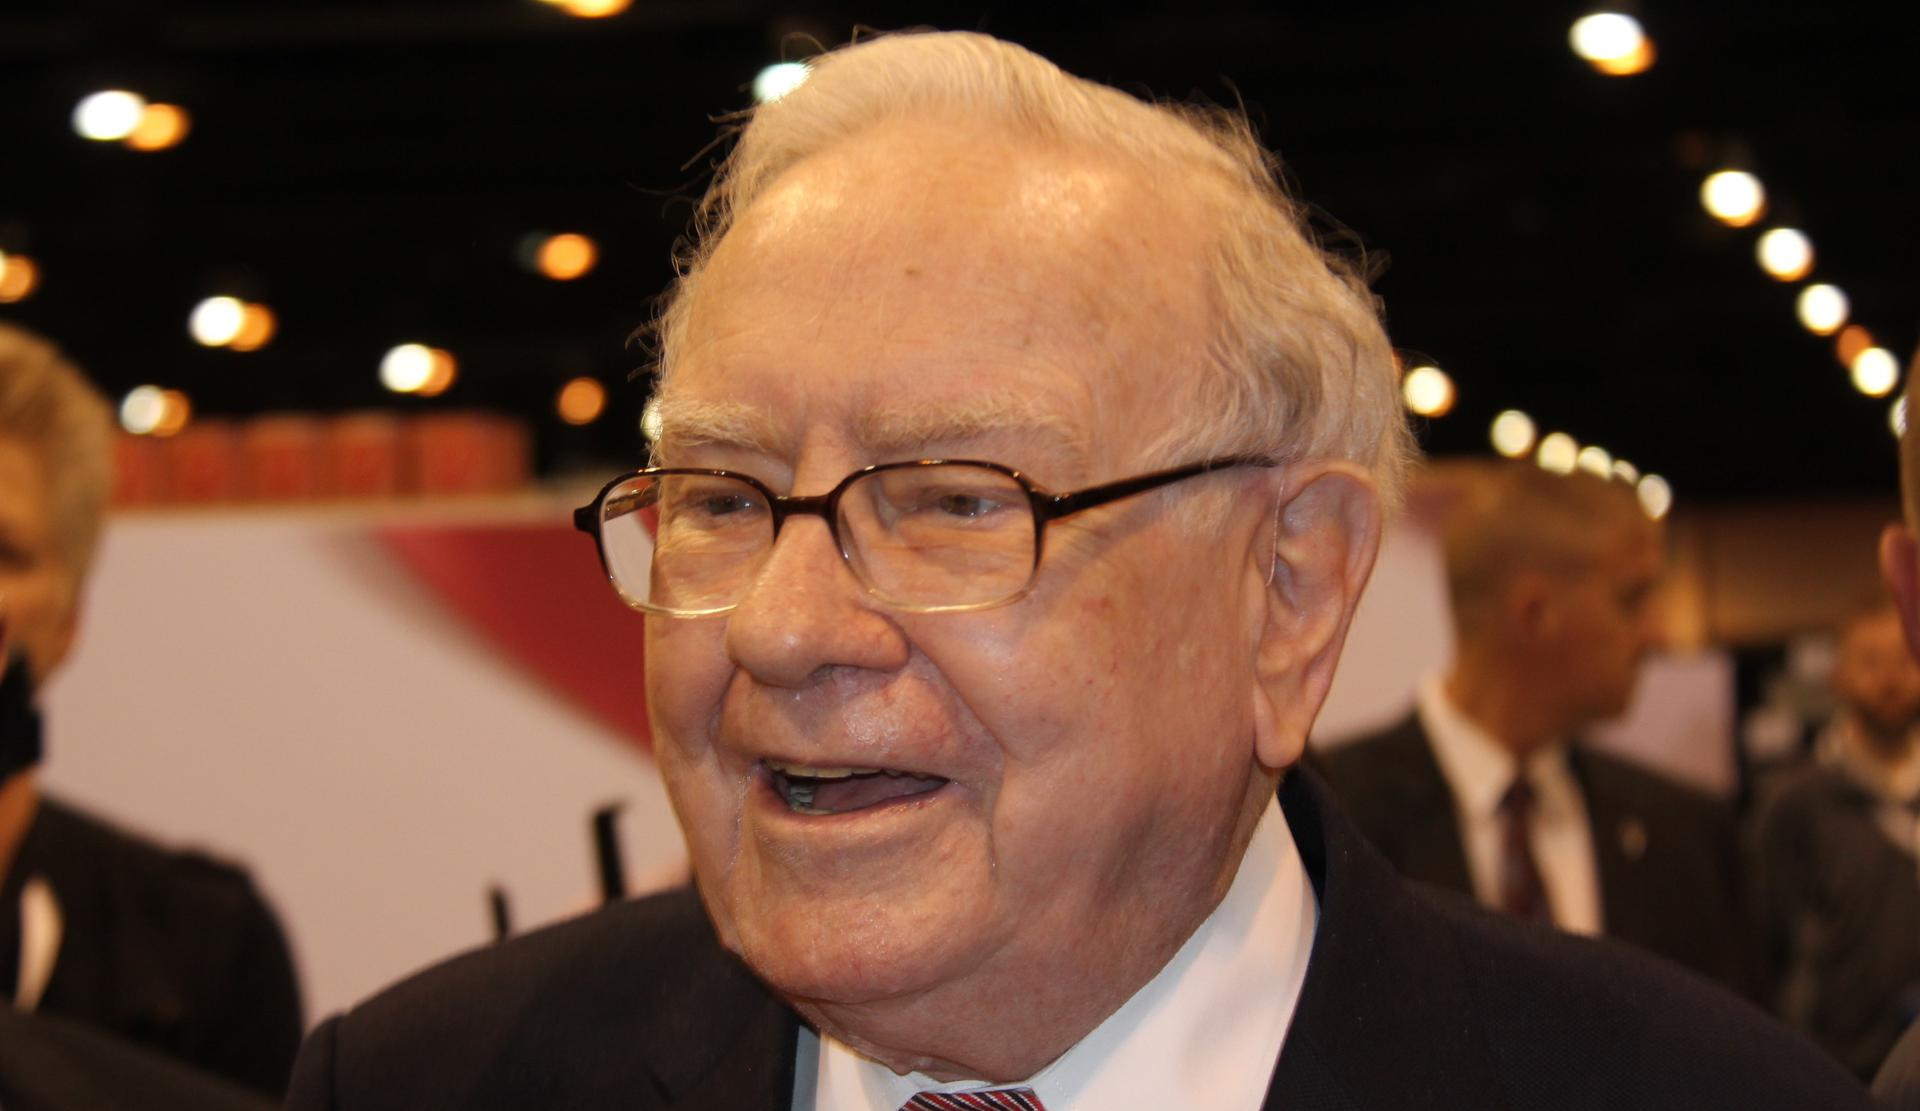 Buffett at 2017 shareholders meeting. Photo: CNBC/Lacy O'Toole